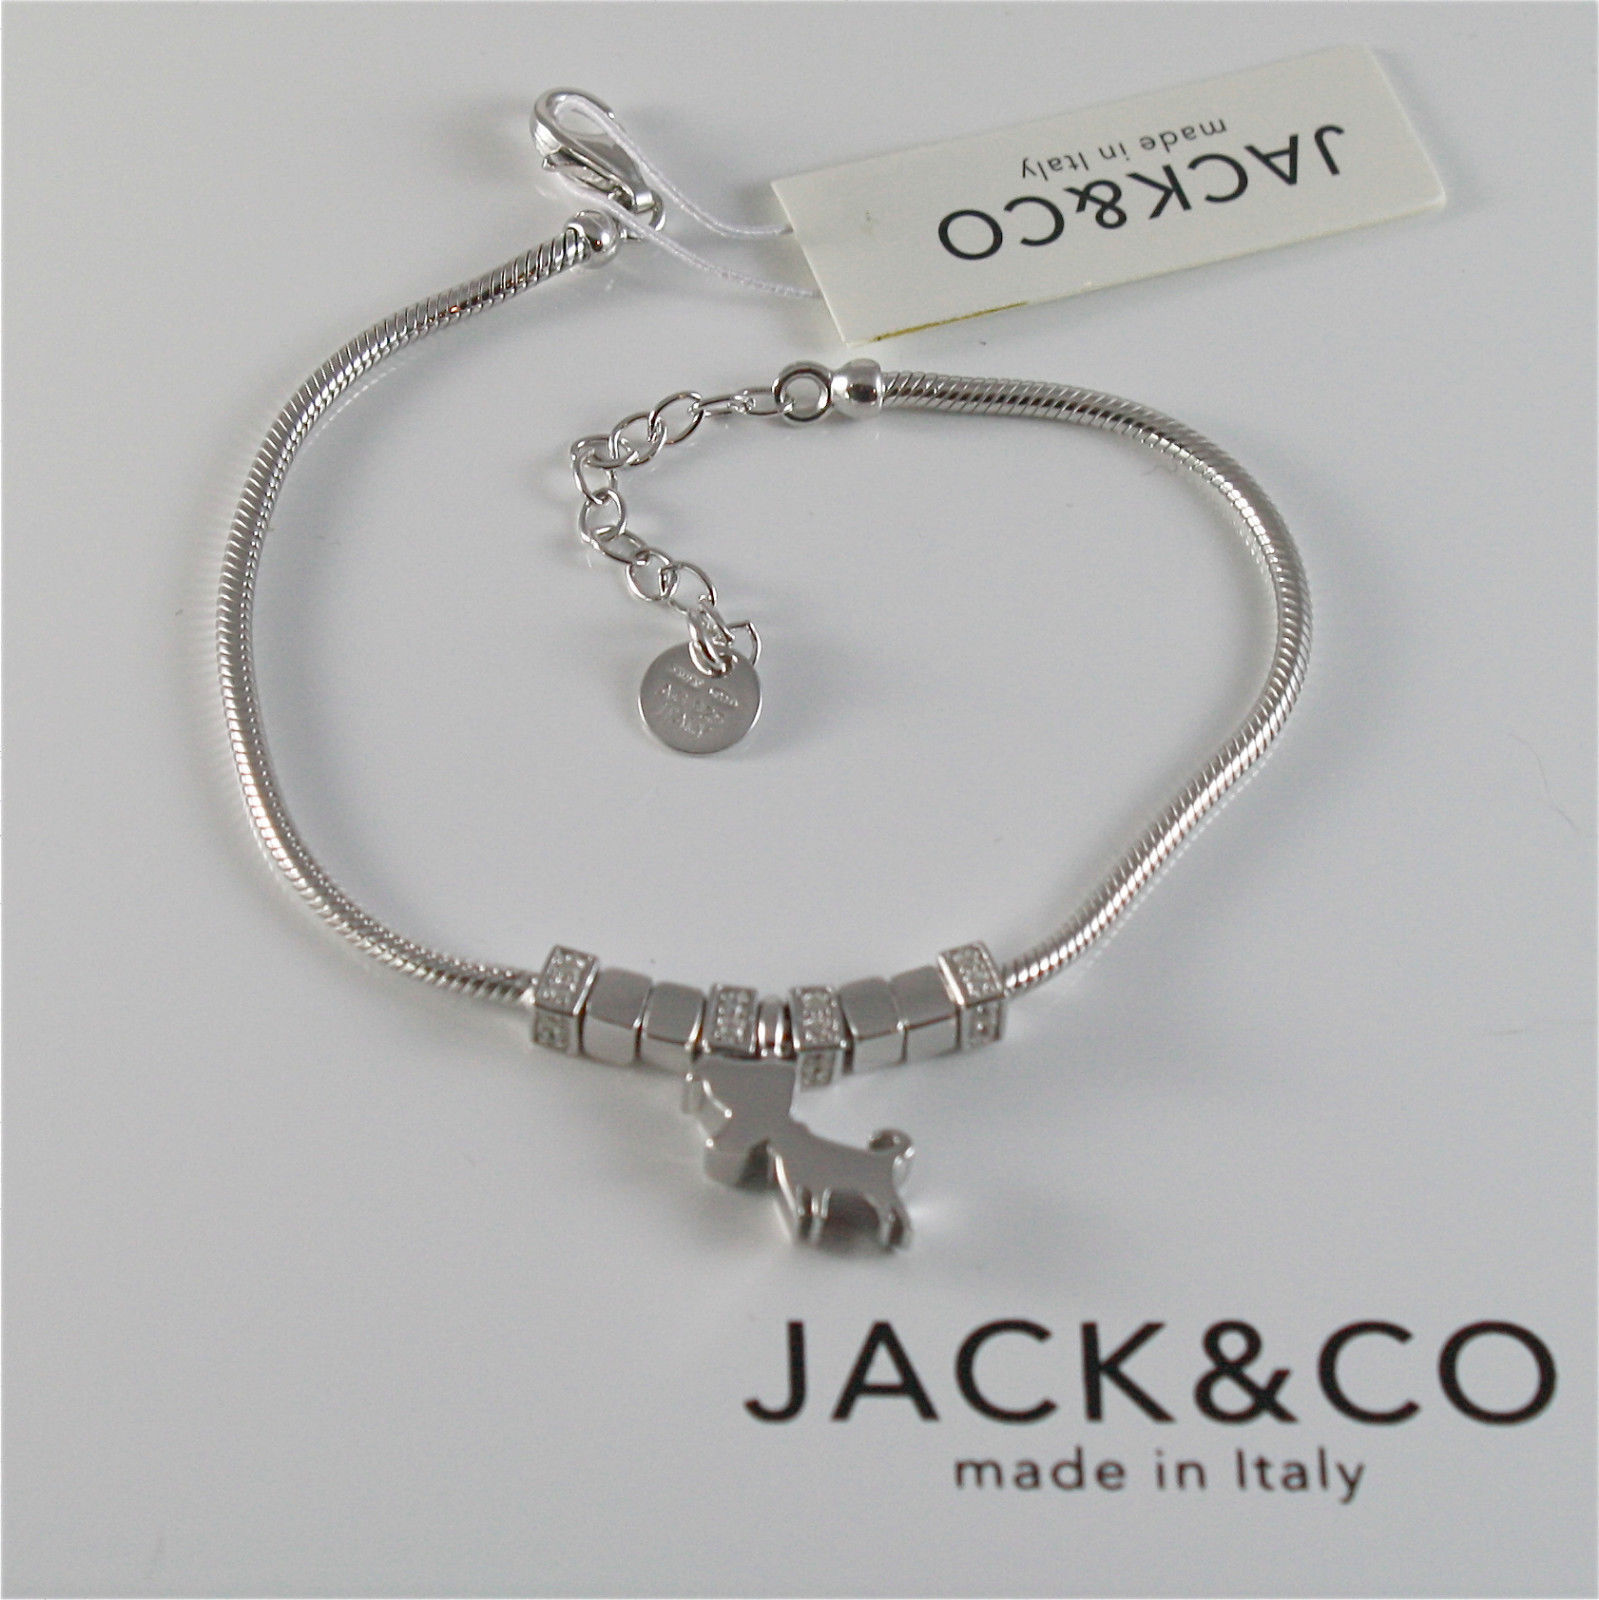 925 RHODIUM SILVER JACK&CO BRACELET WITH JACK RUSSEL TERRIER DOG  MADE IN ITALY